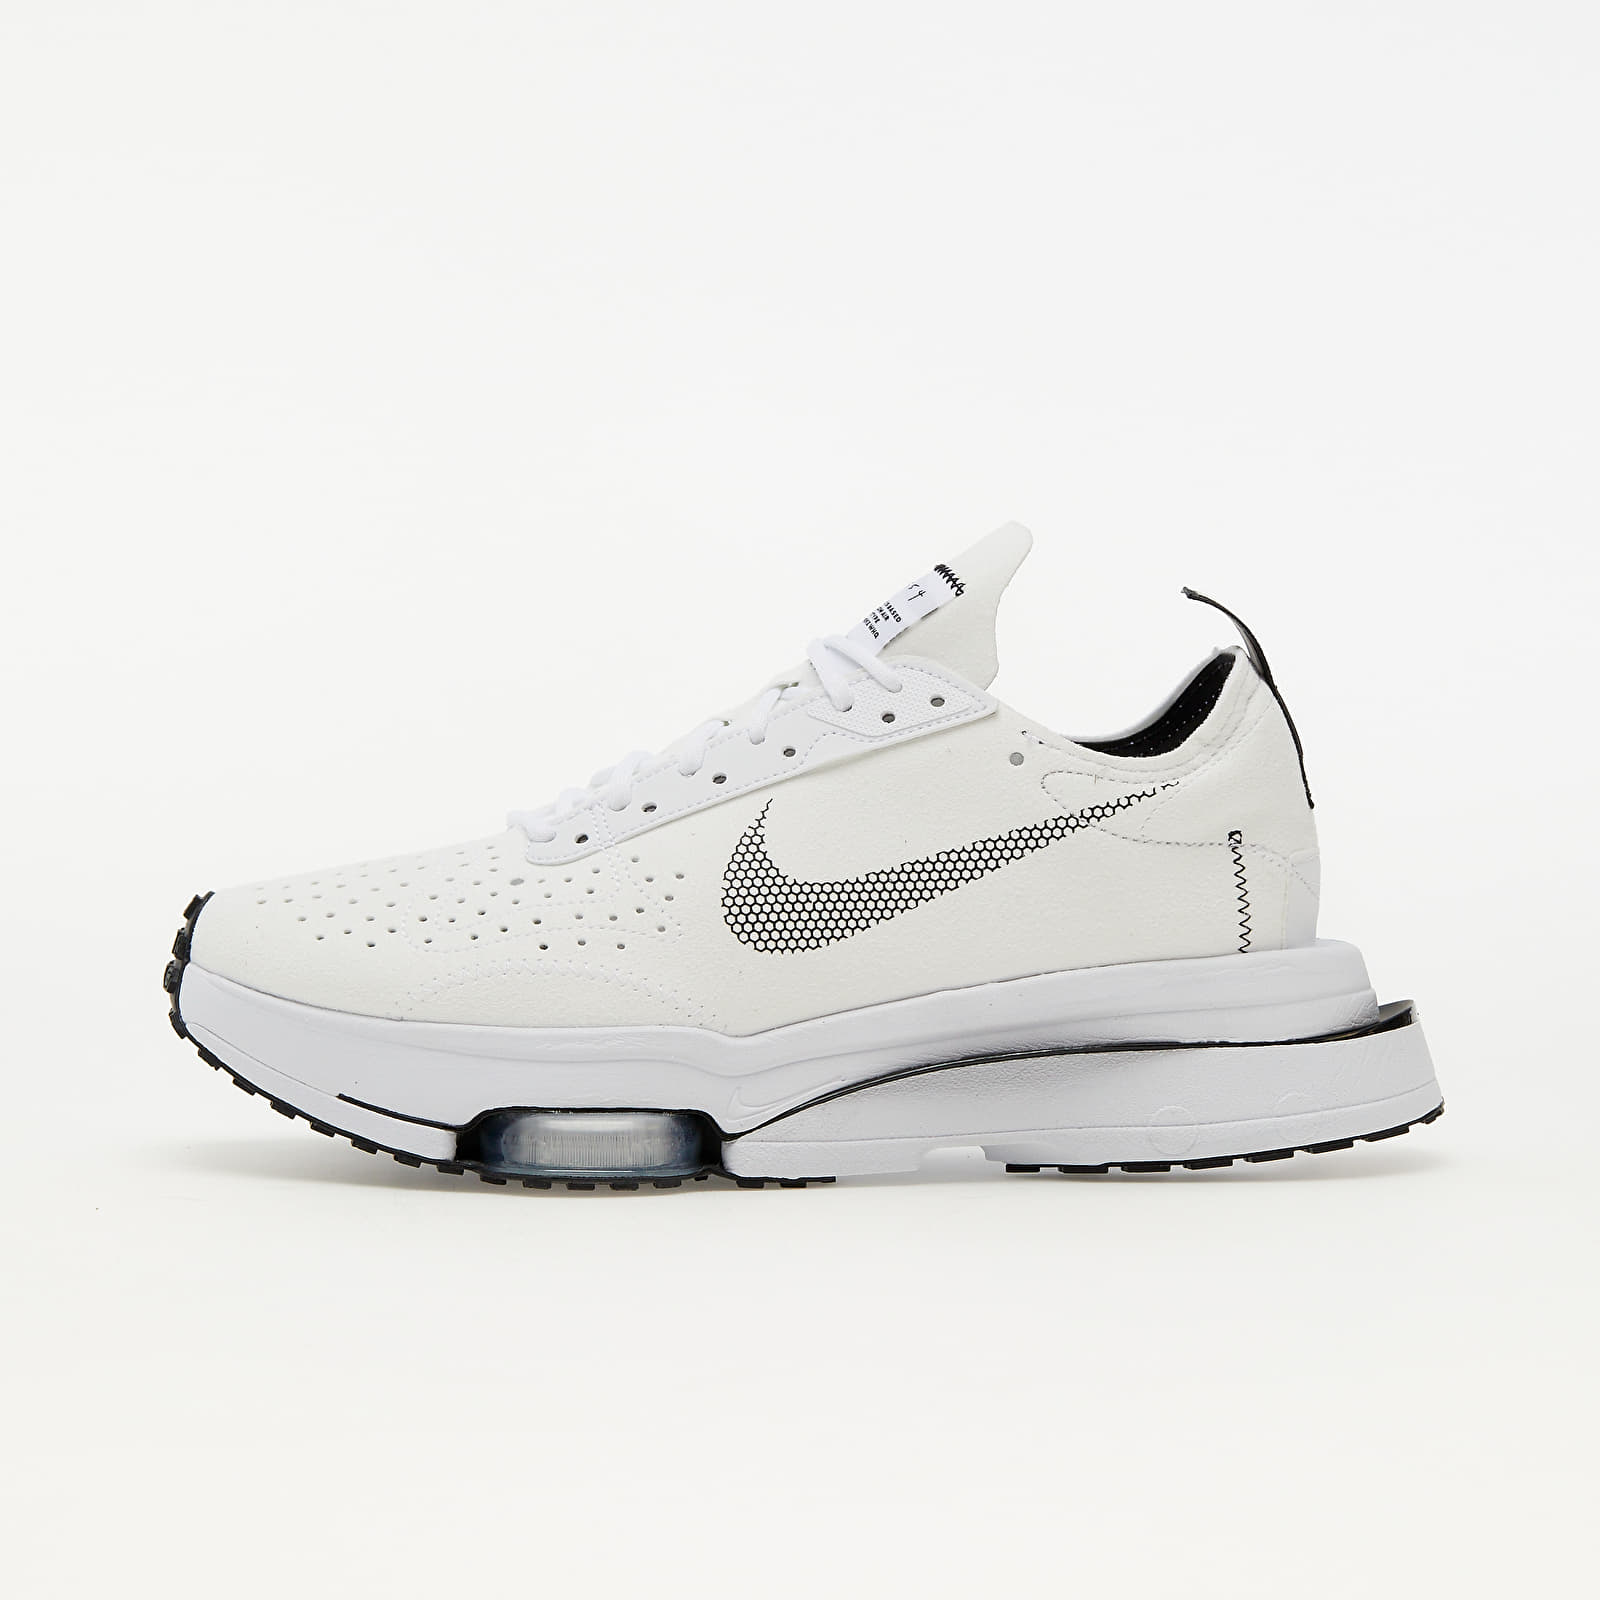 Nike Air Zoom Type White/ Black/ White EUR 40.5